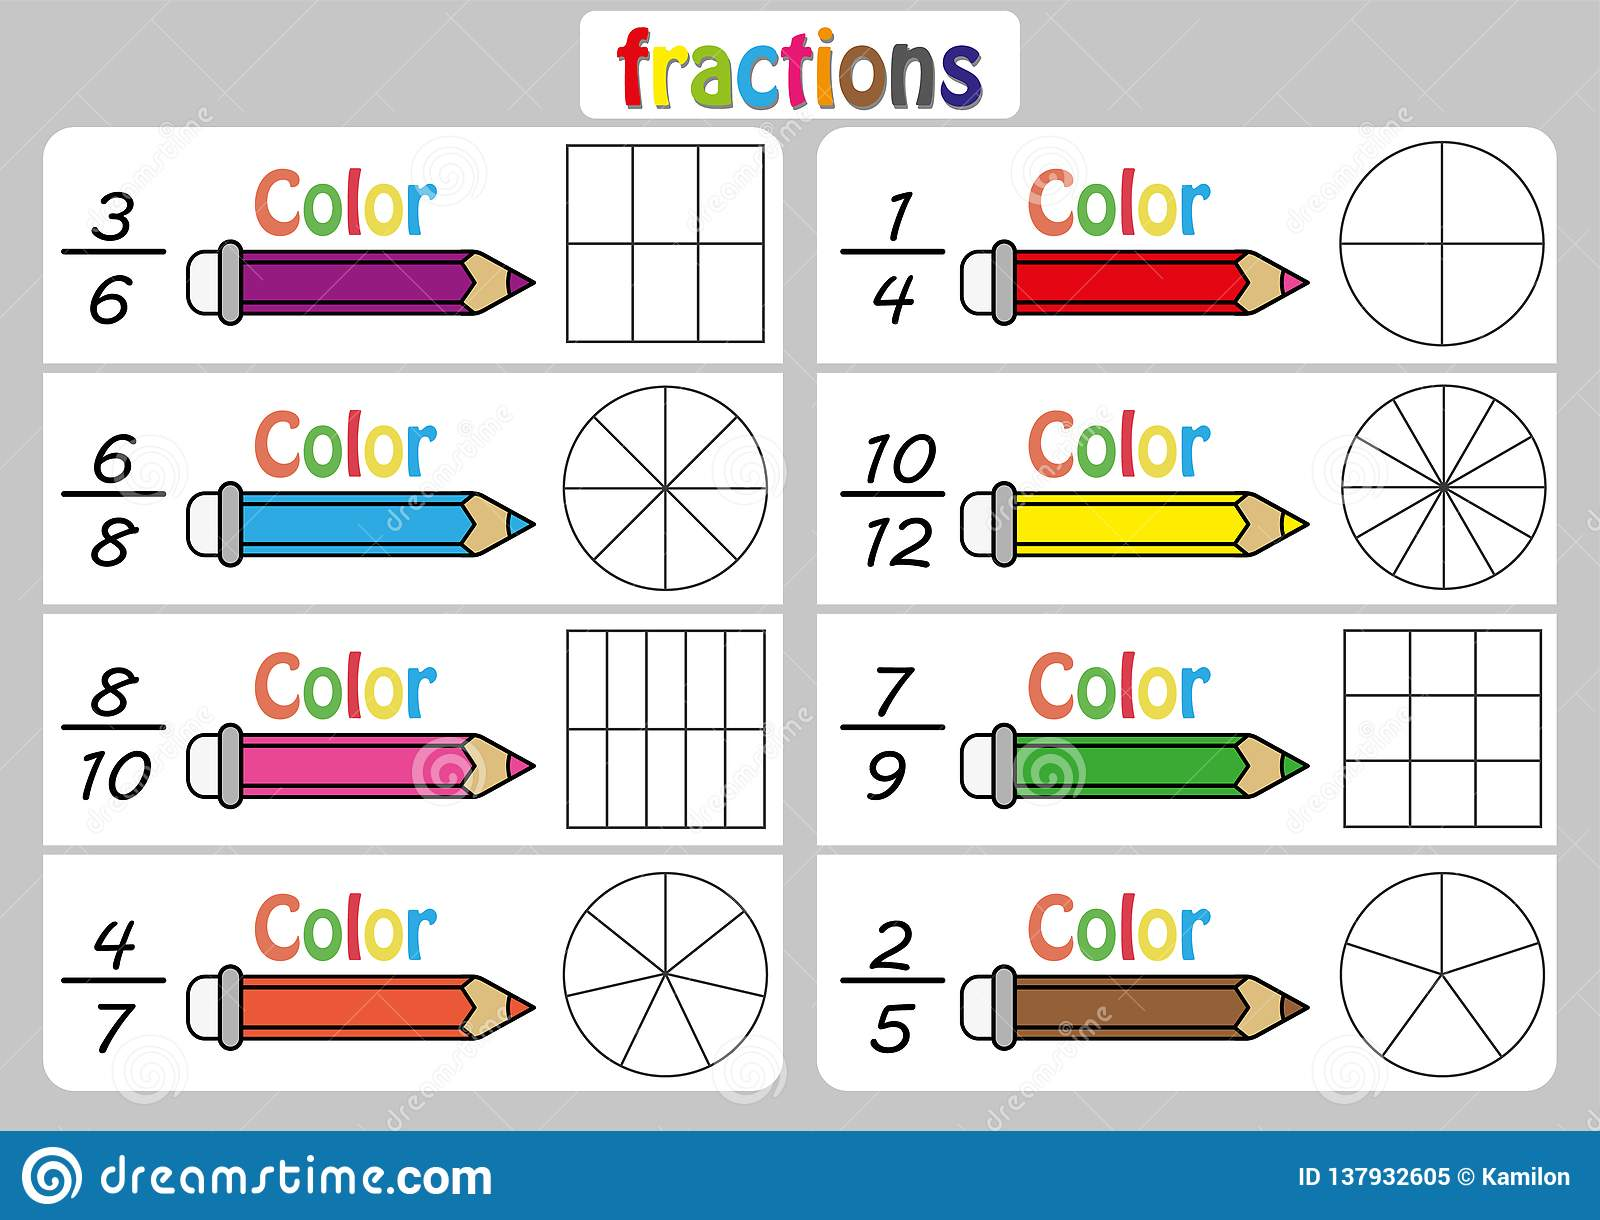 fractions worksheet fraction review fraction practice educational  fractions worksheet fraction review fraction practice educational  equivalent fractions math activity for kids